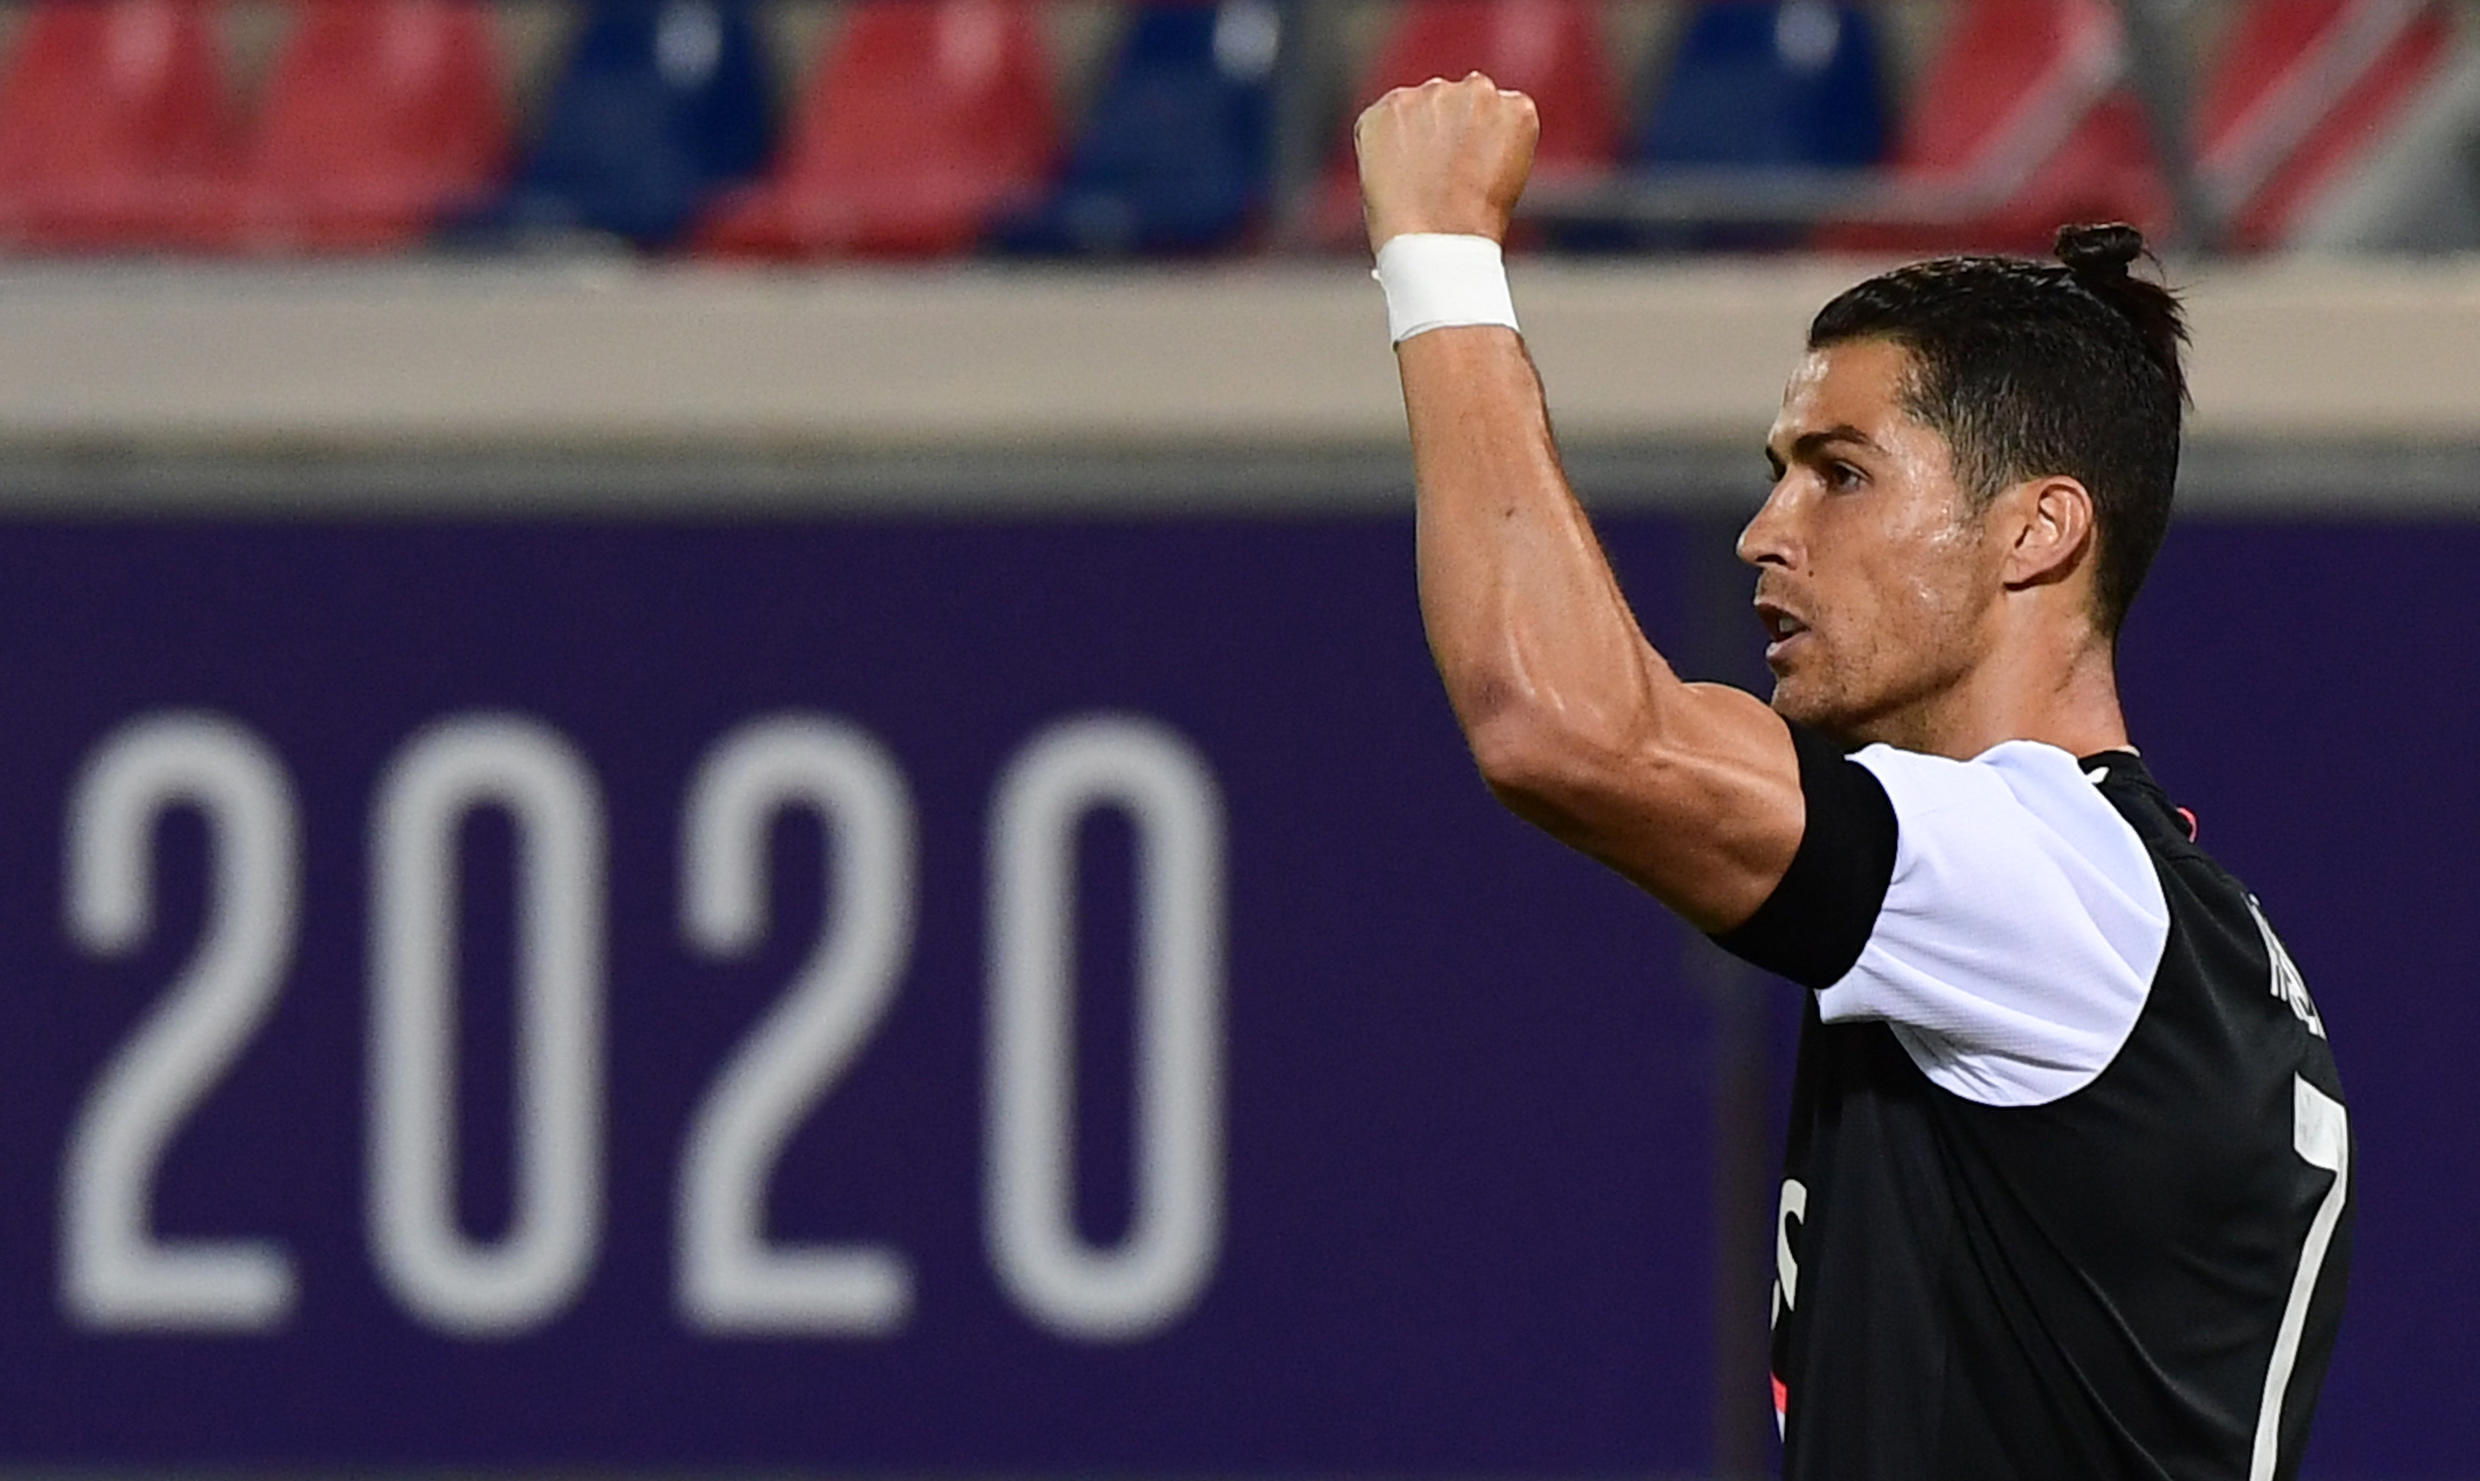 Cristiano Ronaldo scored one goal and set up another in Juventus' 4-0 drubbing of Lecce.